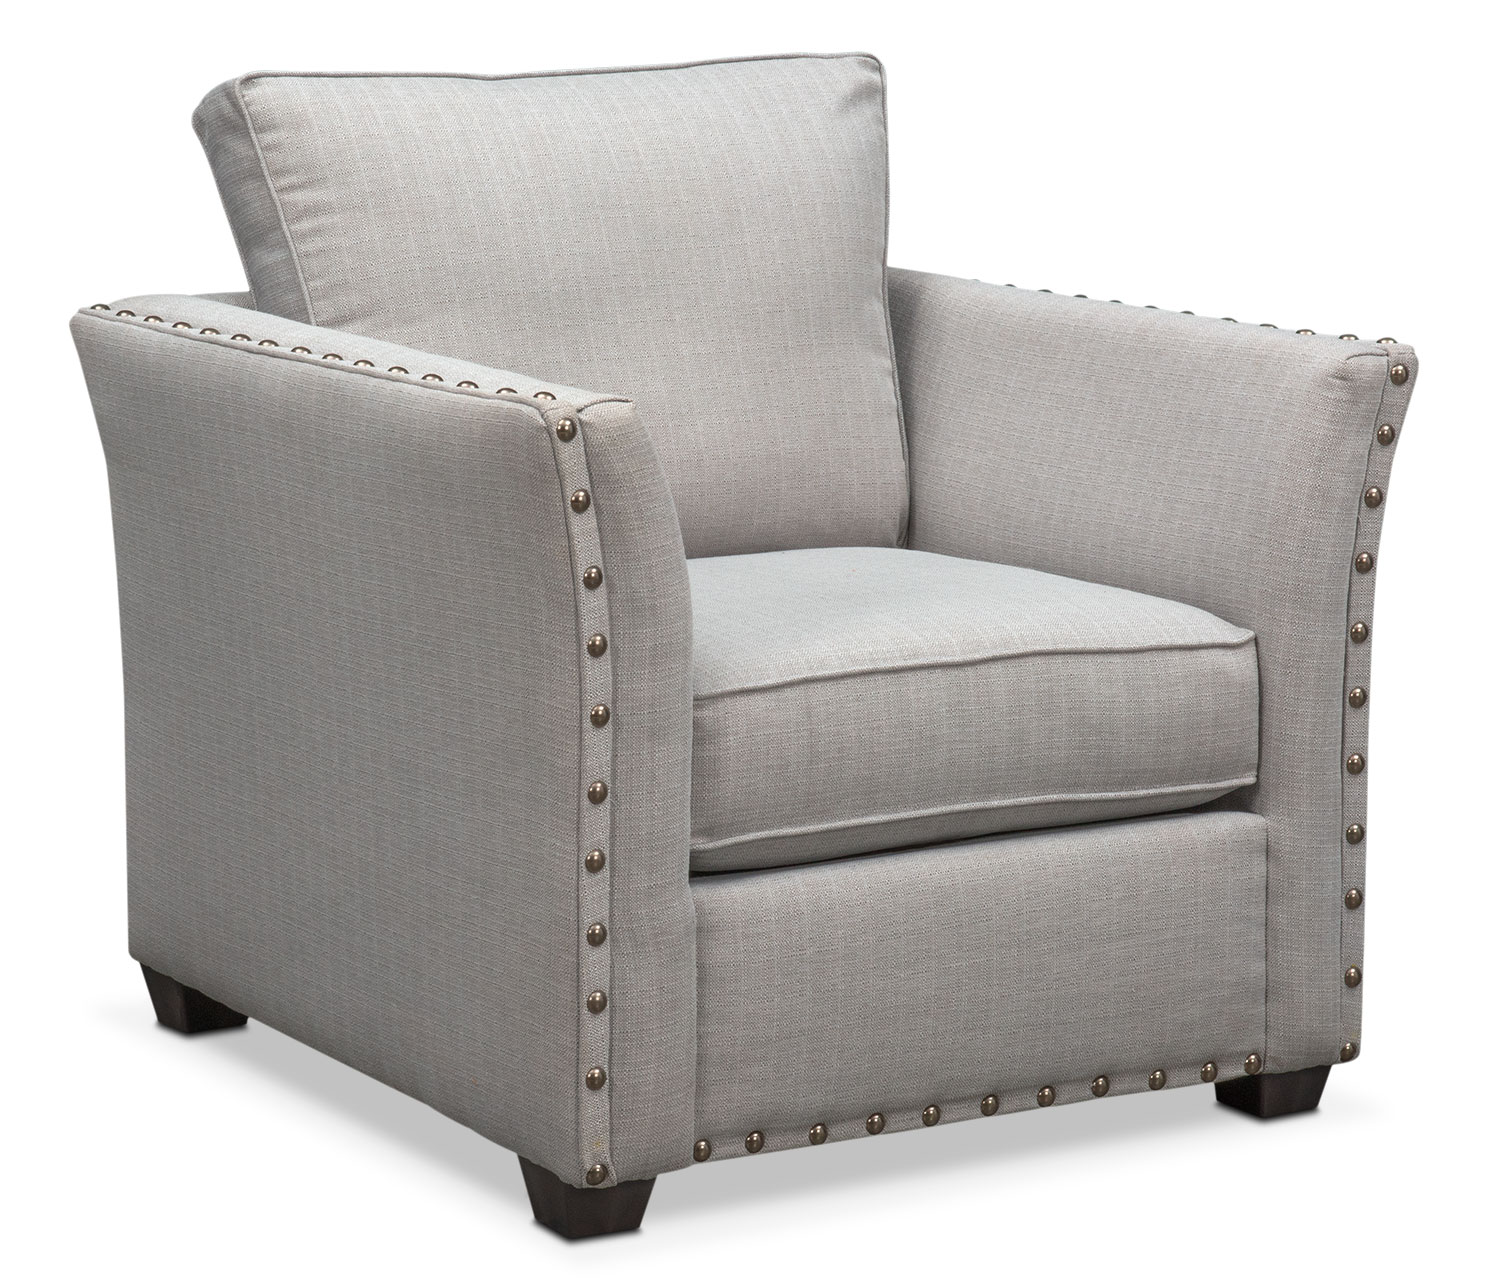 Mckenna Queen Memory Foam Sleeper Sofa And Chair Set   Pewter